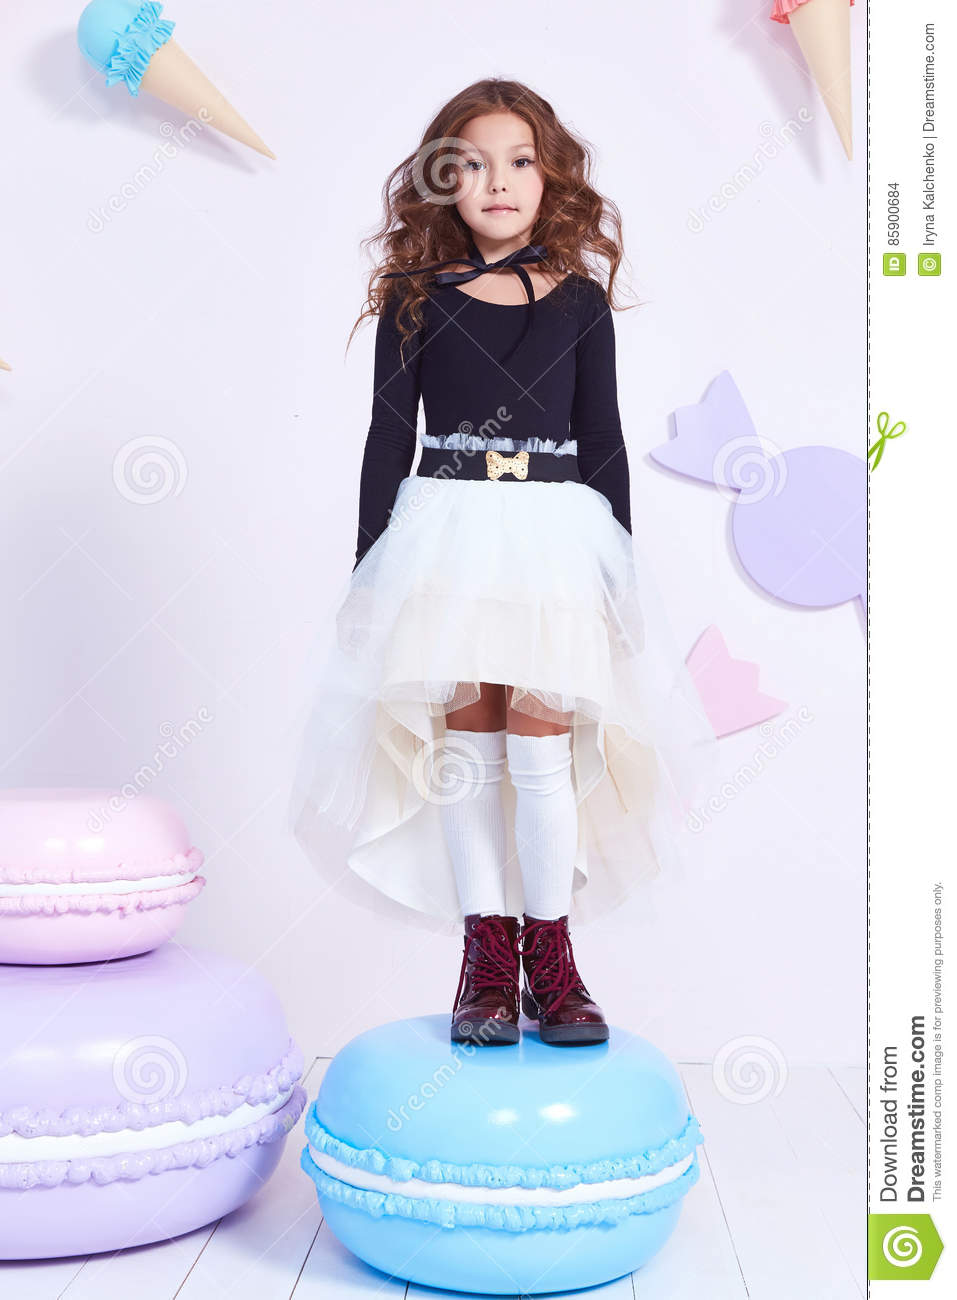 abed9a1e0 Cute little baby girl fashion pretty model dark blonde curly lady hair  funny child birthday party fun children room decoration candy bar sweet  play toy wear ...